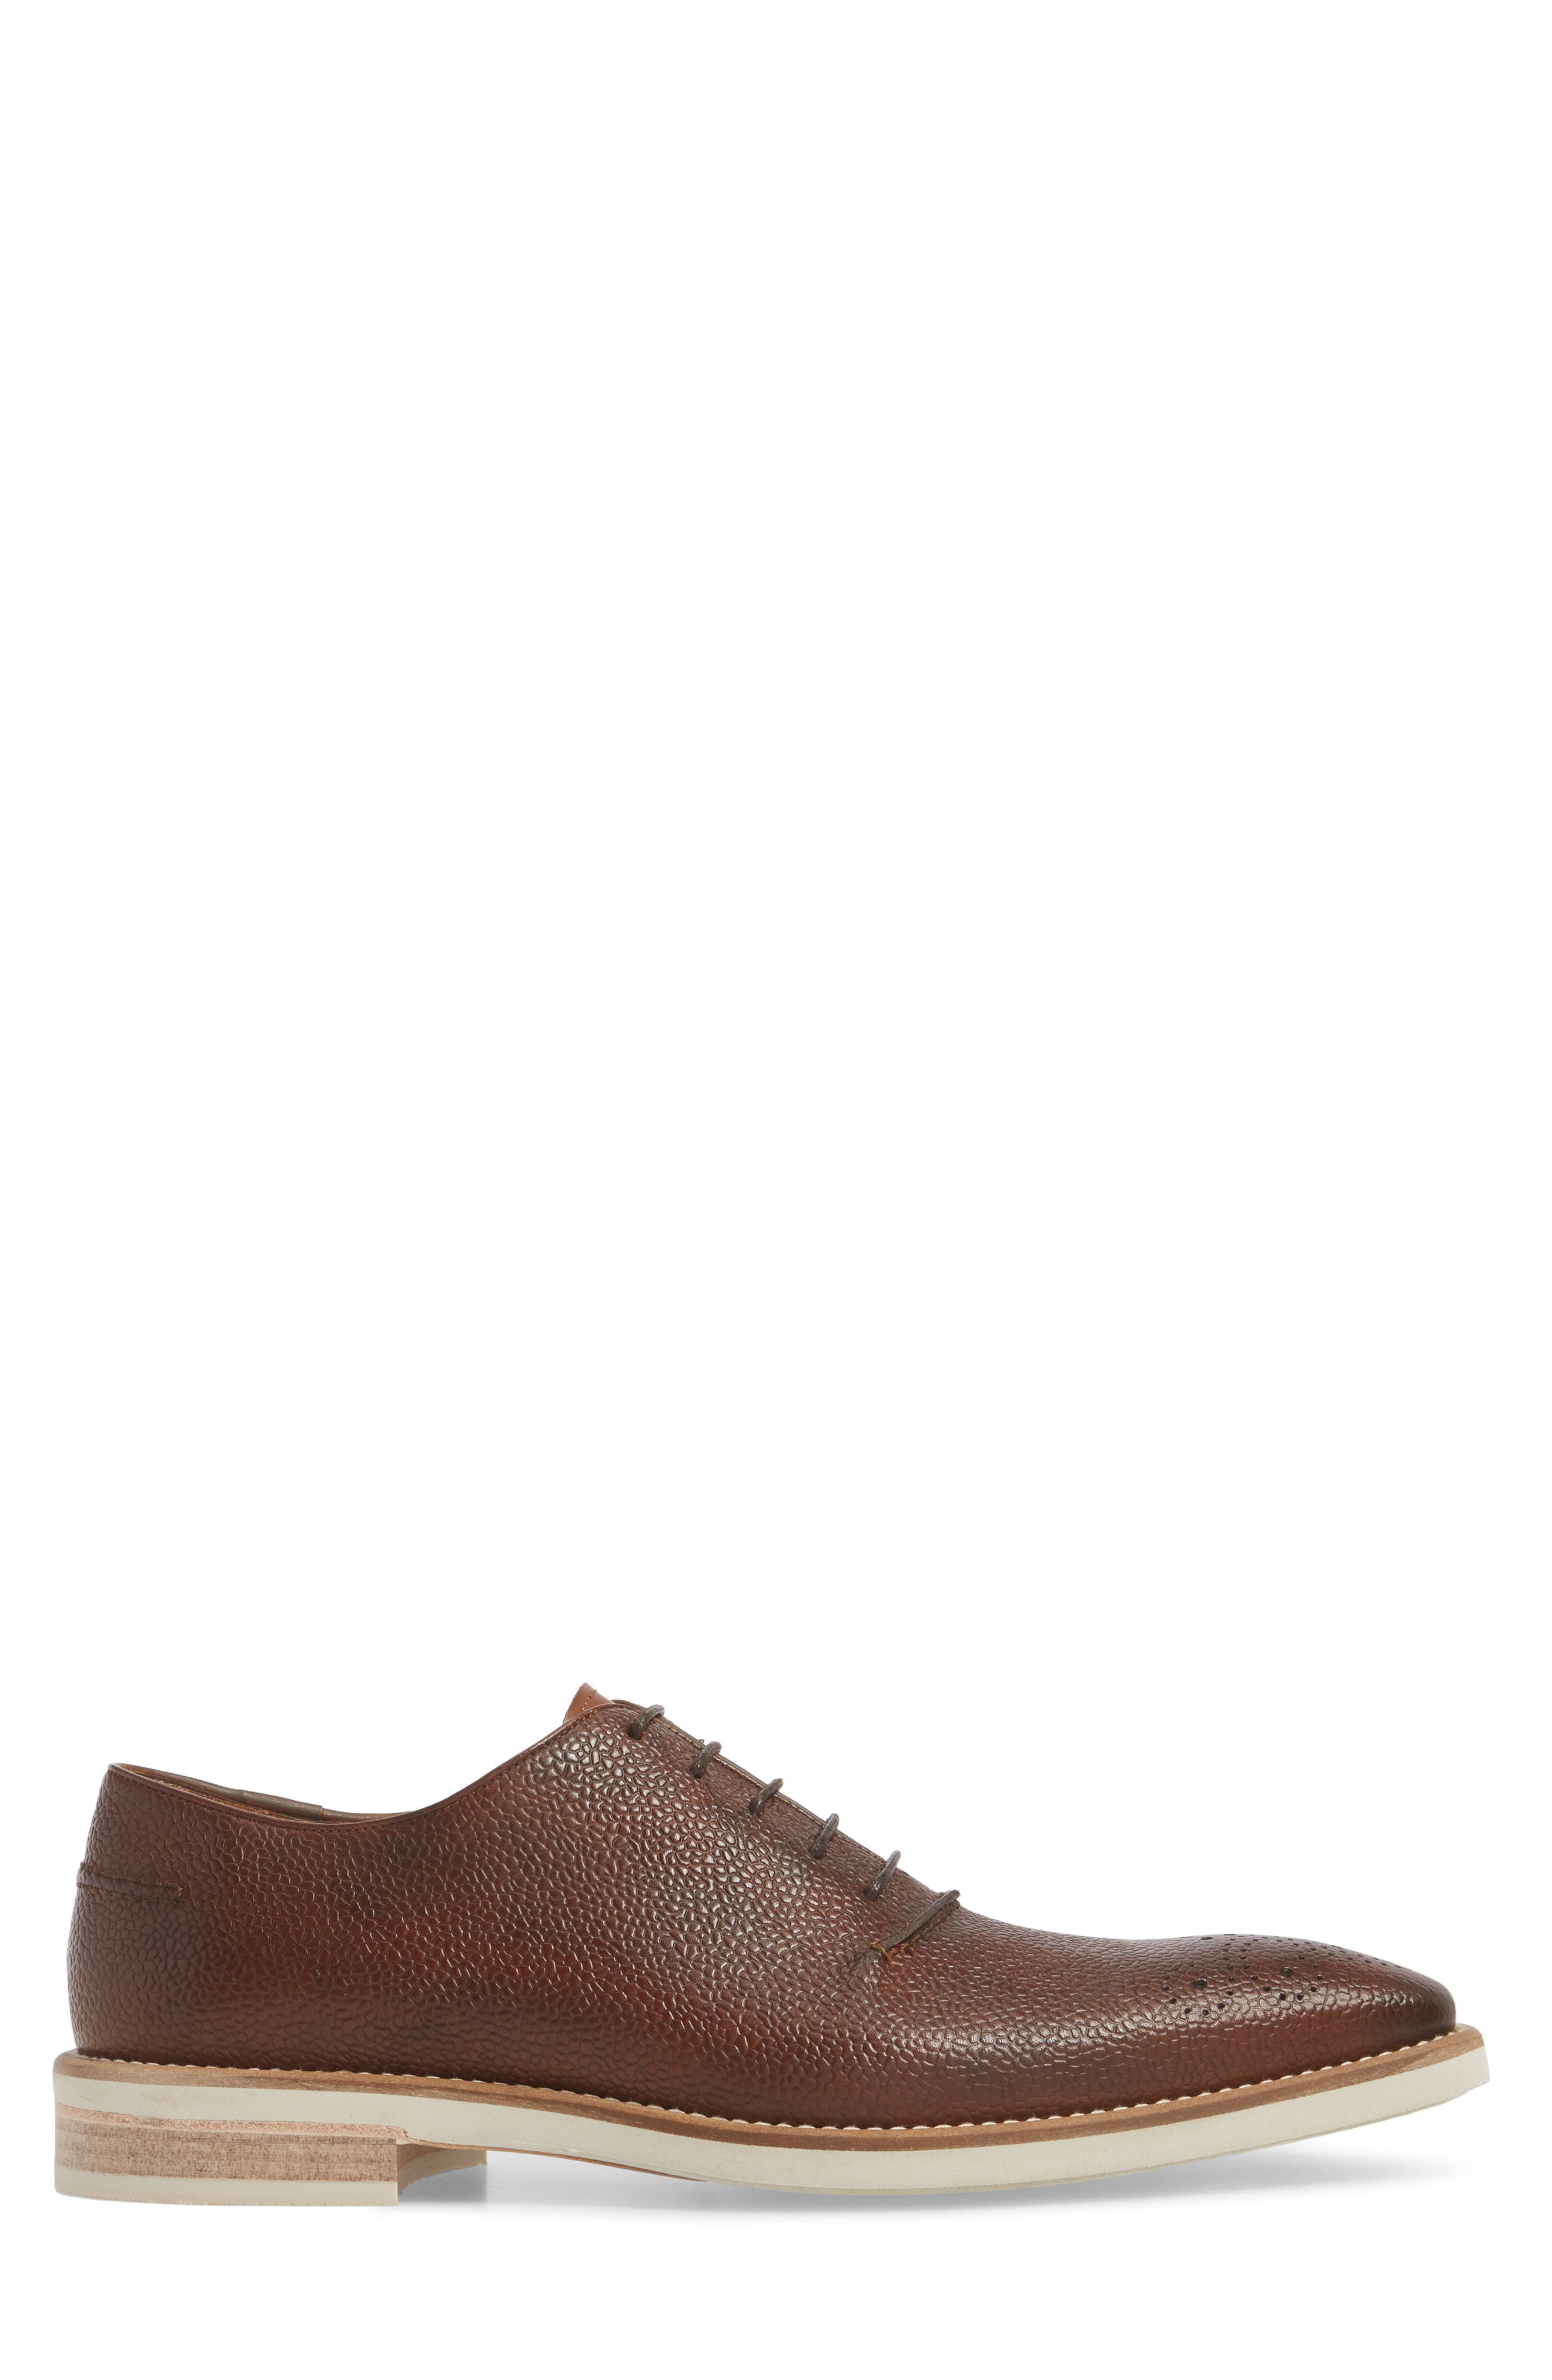 Polux Brogued Oxford,                             Alternate thumbnail 3, color,                             COGNAC LEATHER